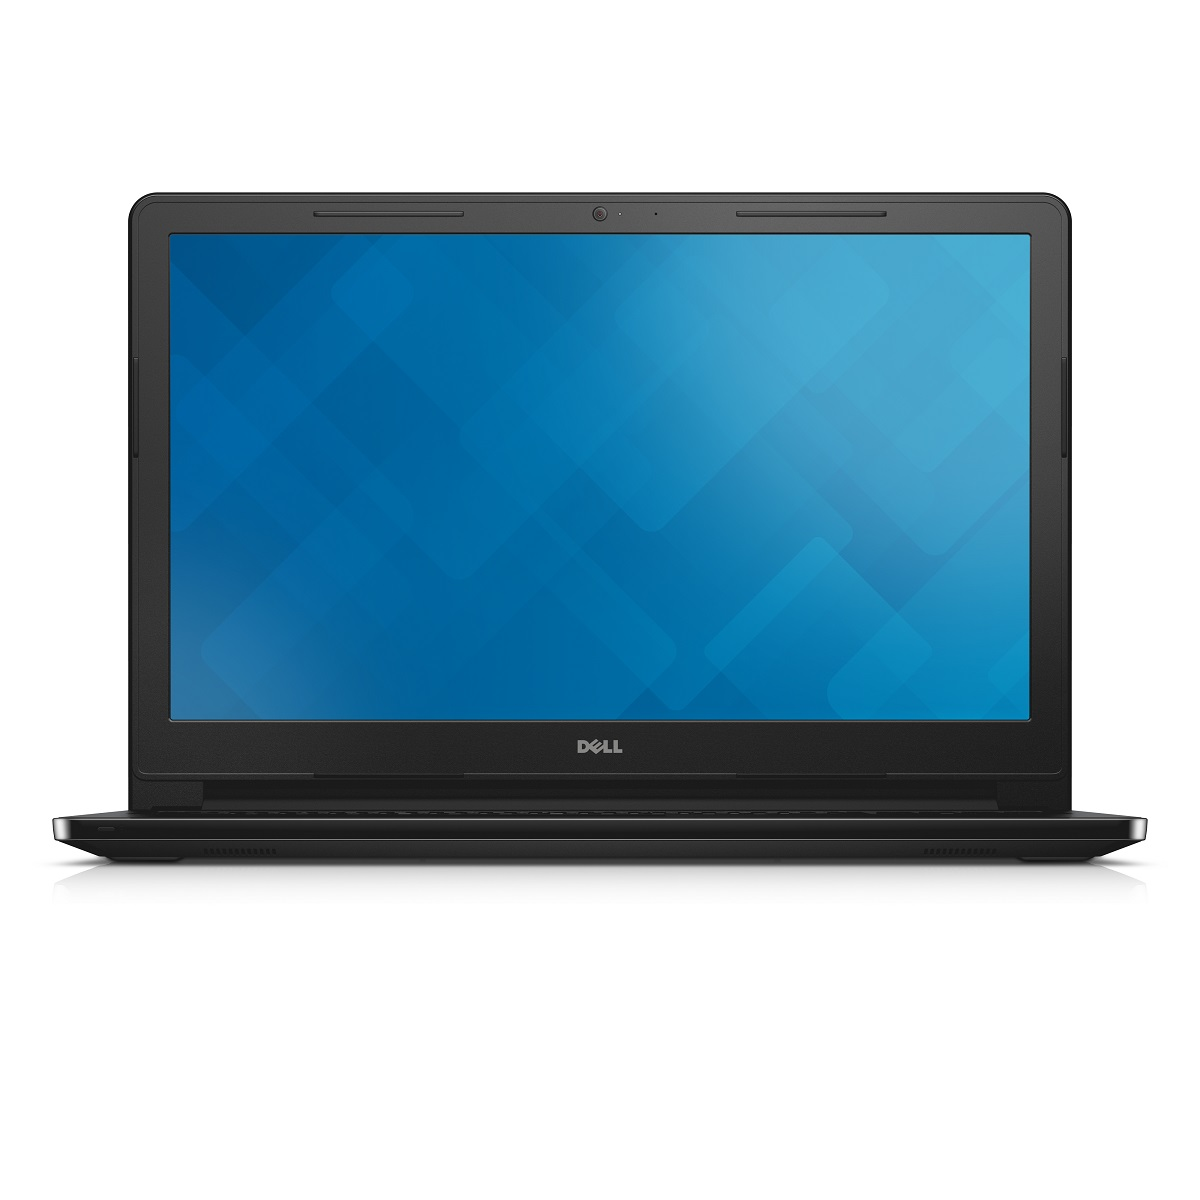 Notebook Dell Inspiron 3567 15.6 Full HD Intel Core i5-7200U R5 M430-2GB RAM 4GB SSD 256GB Linux